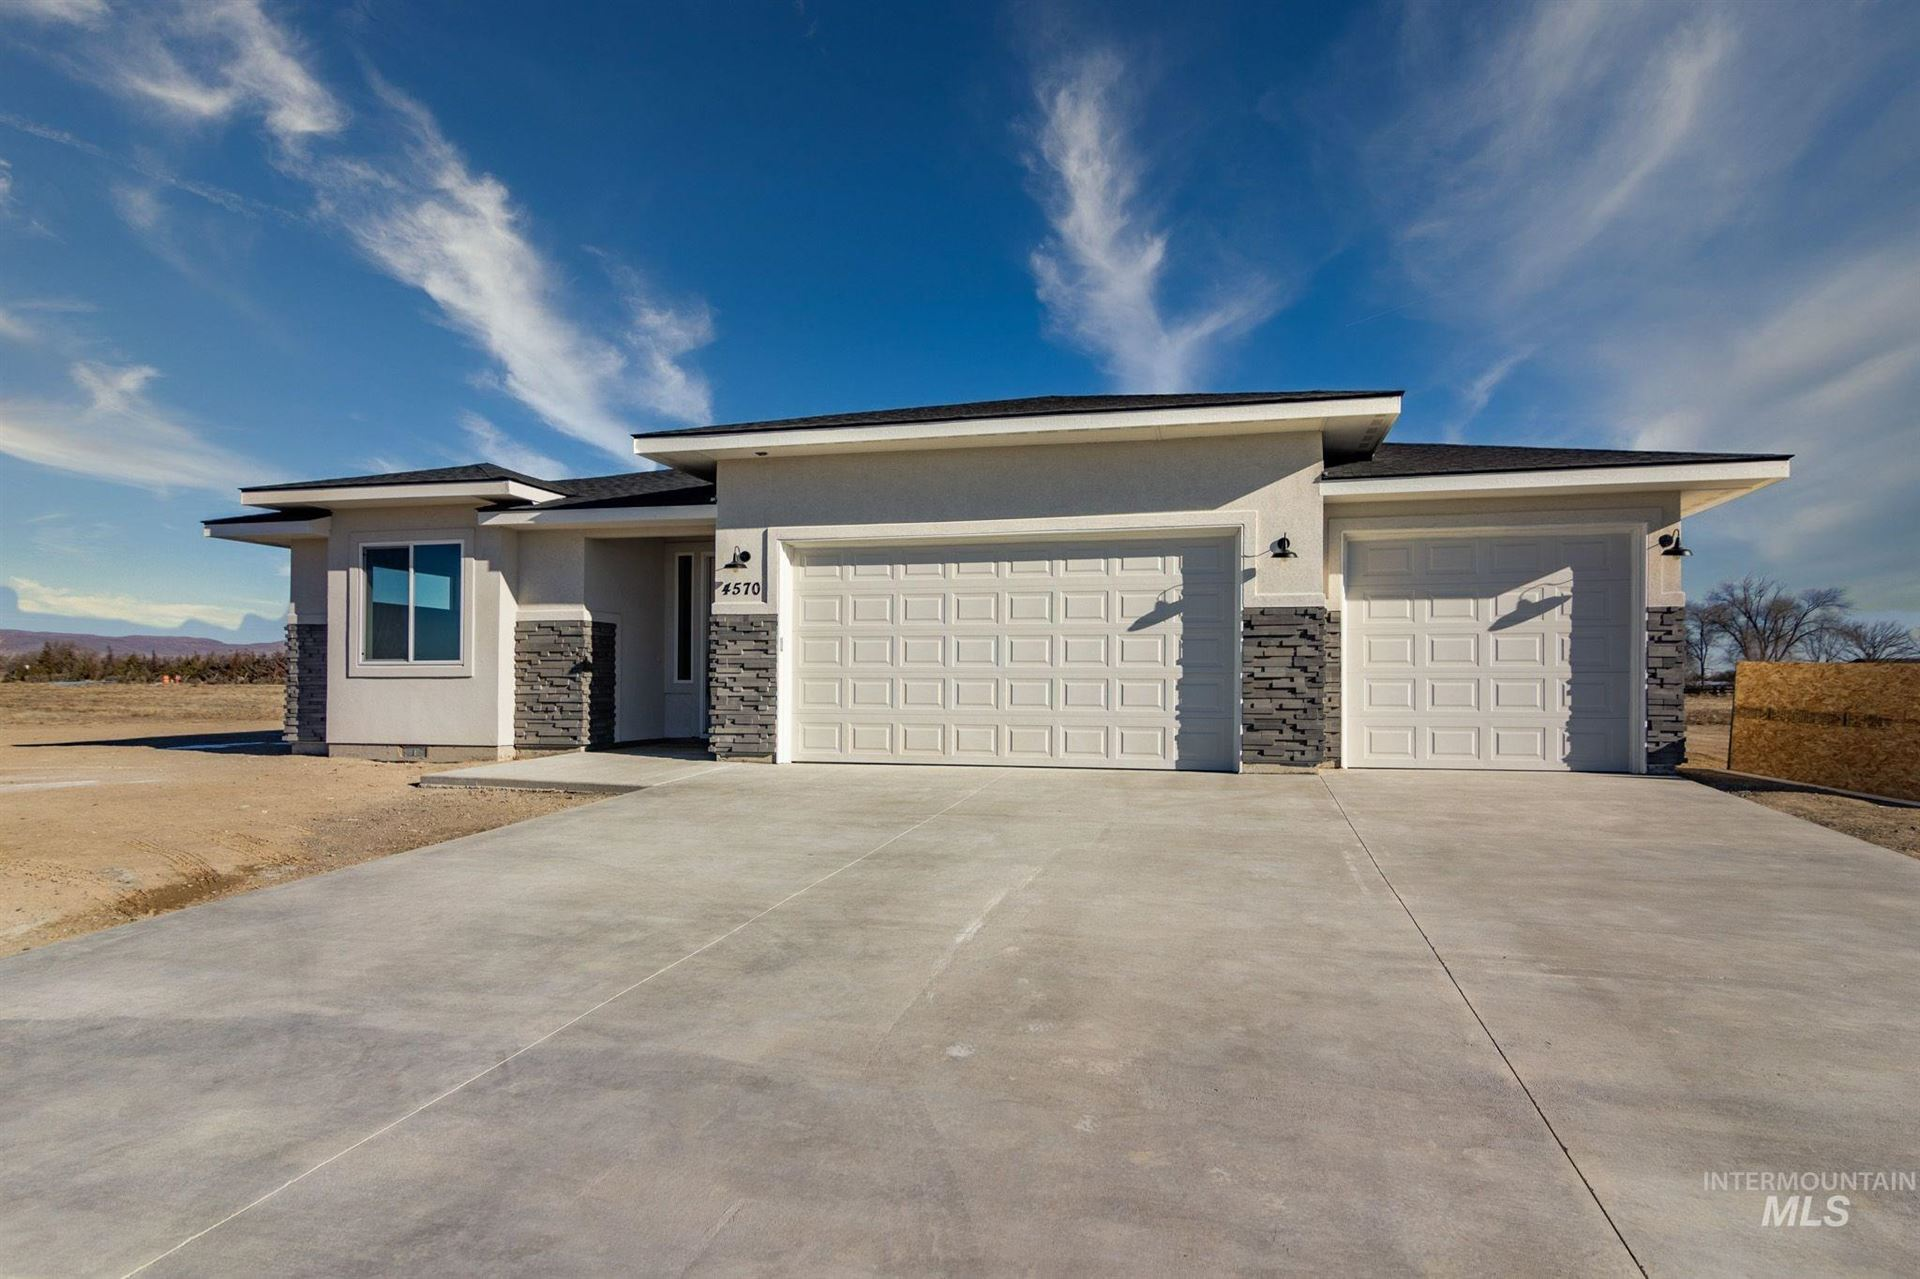 Photo of 4570 Purple Sage Cir, Mountain Home, ID 83647 (MLS # 98787660)